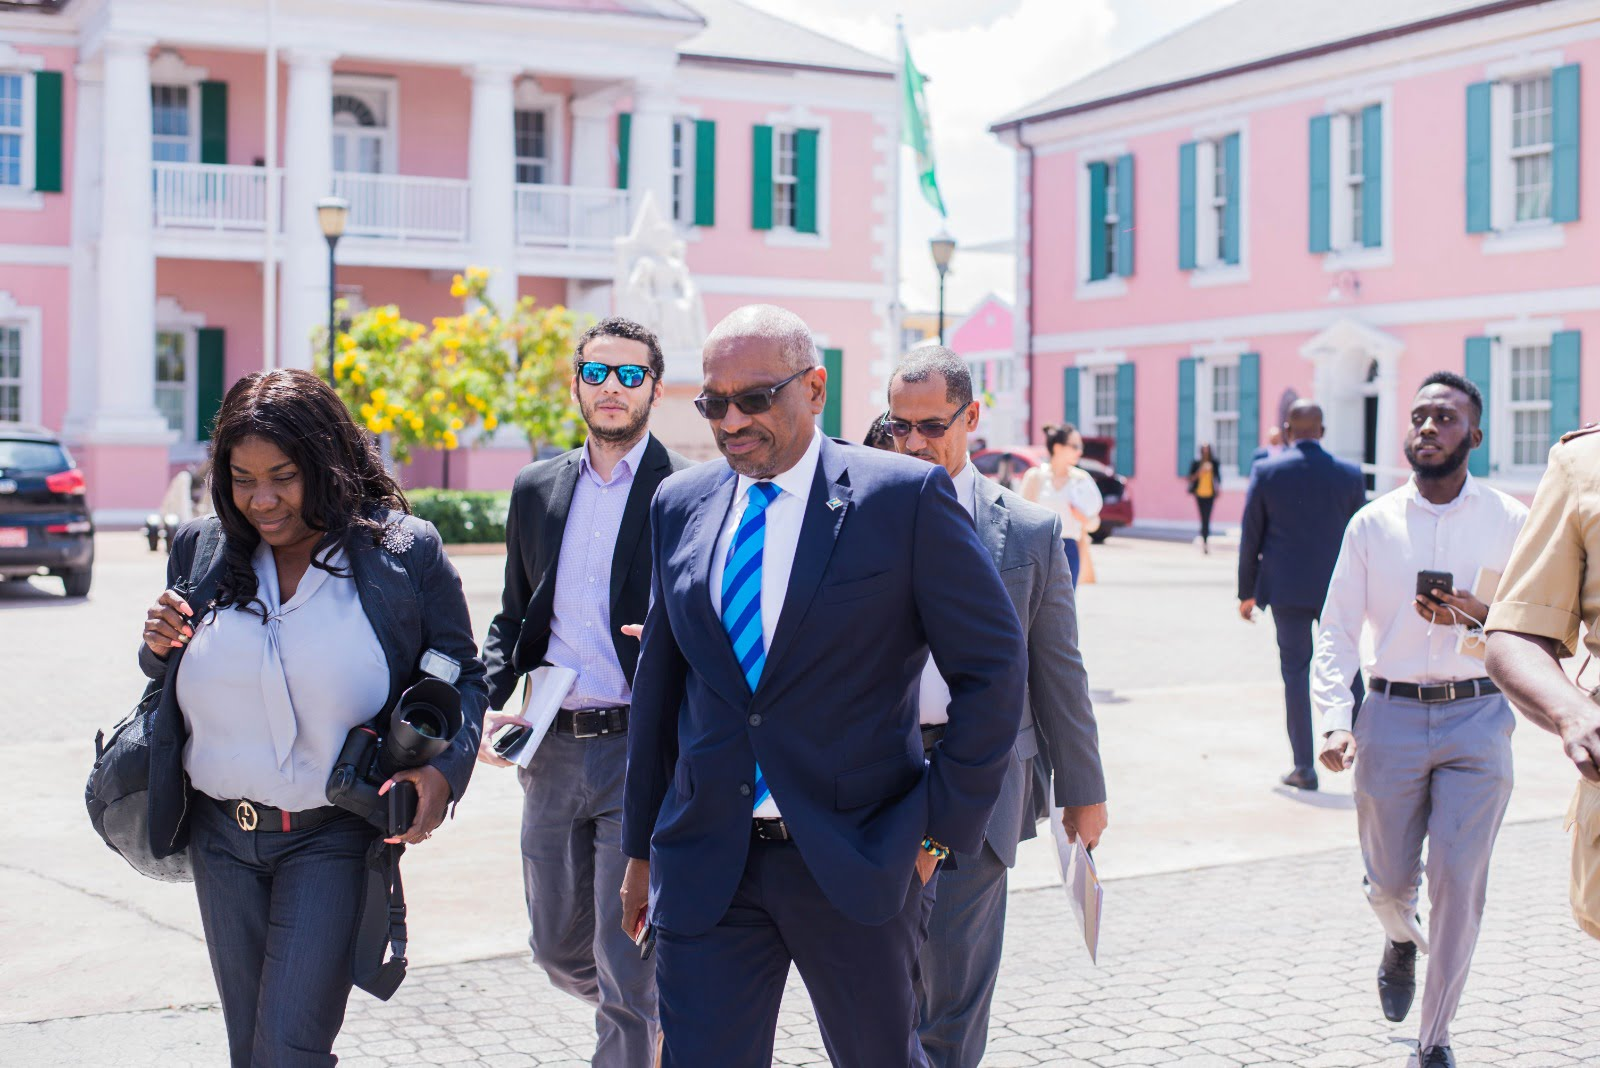 PM tight-lipped on activation of emergency laws